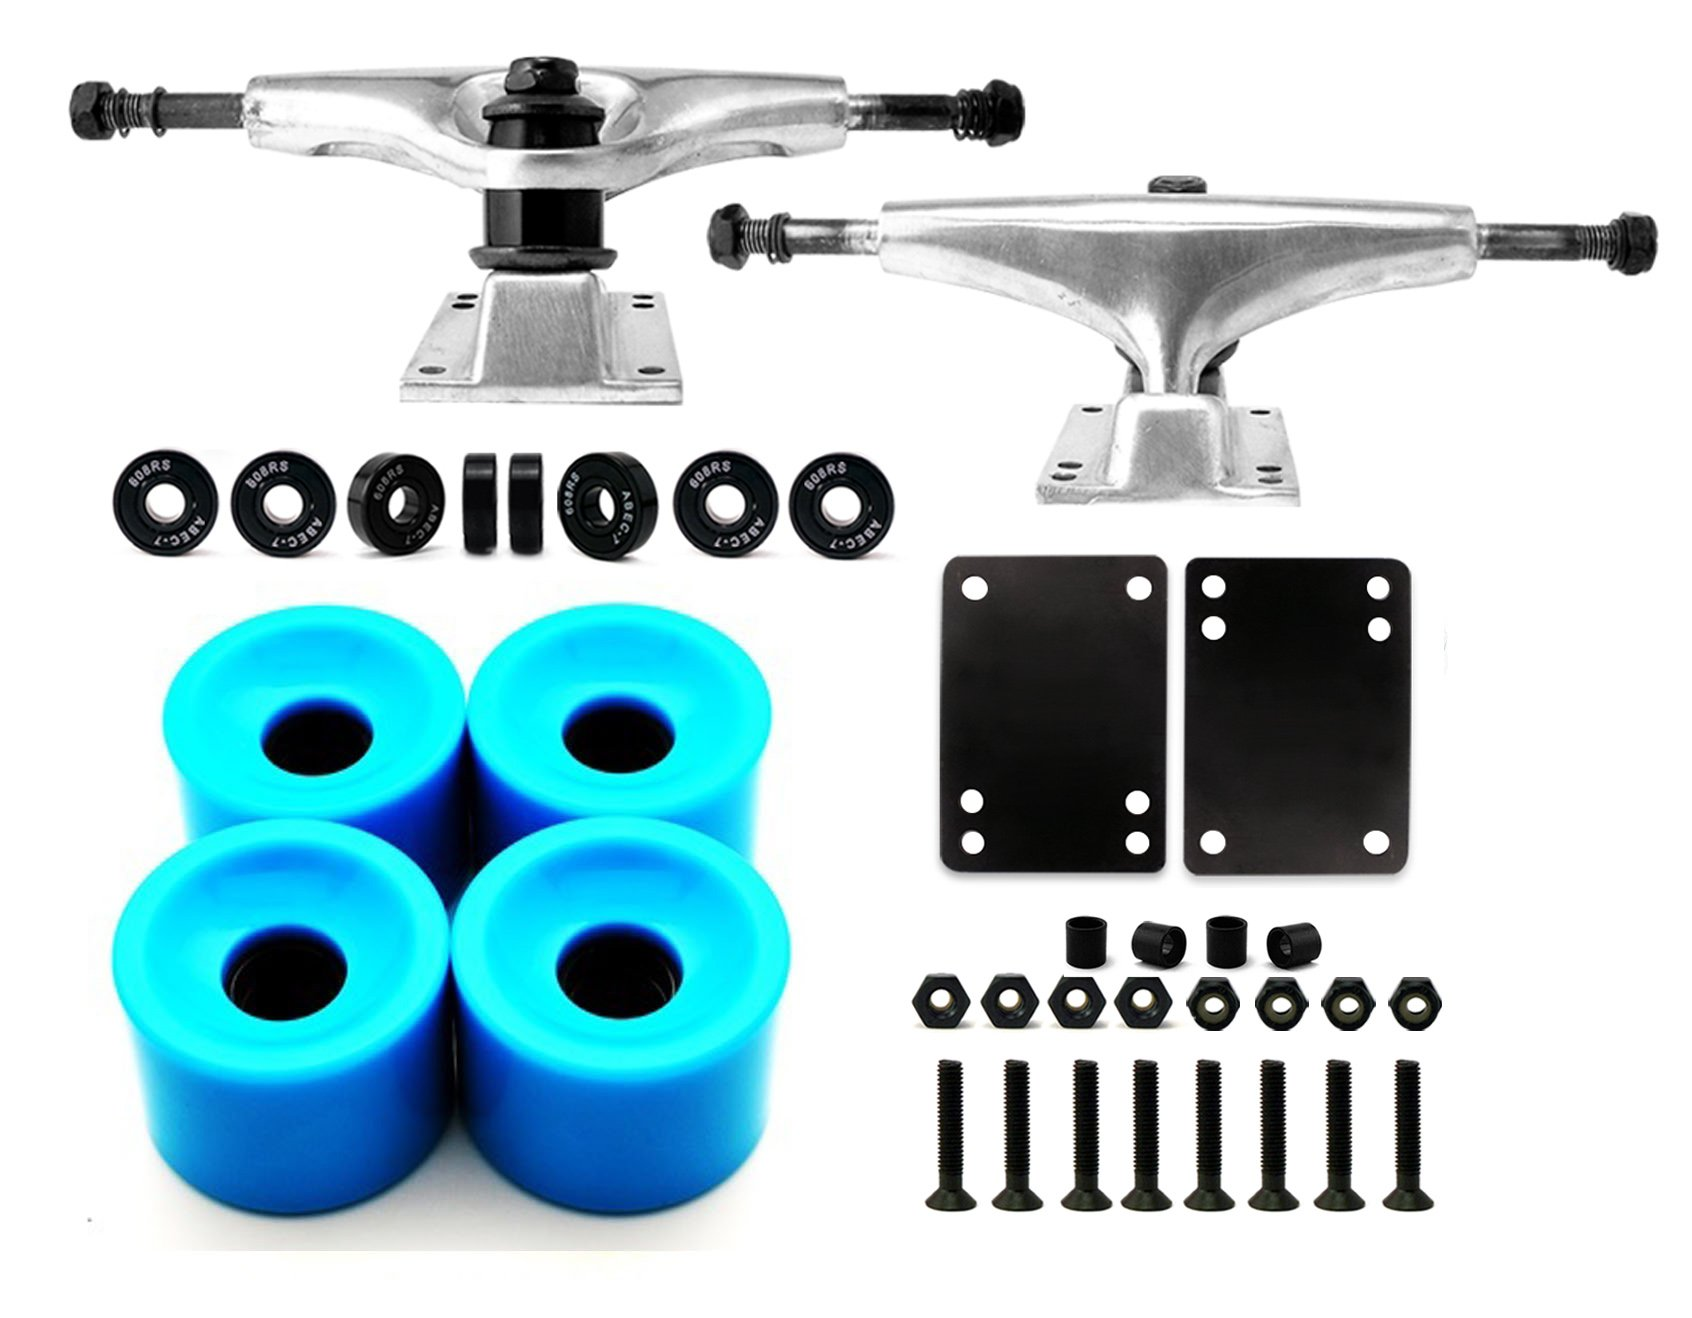 VJ Skateboard Truck and Wheel, 5.0 Skateboard Trucks (Silver) w/Skateboard Crusier Wheel 60mm, Skateboard Bearings, Skateboard Screws, Skateboard Riser Pads (Sky Blue) by VJ